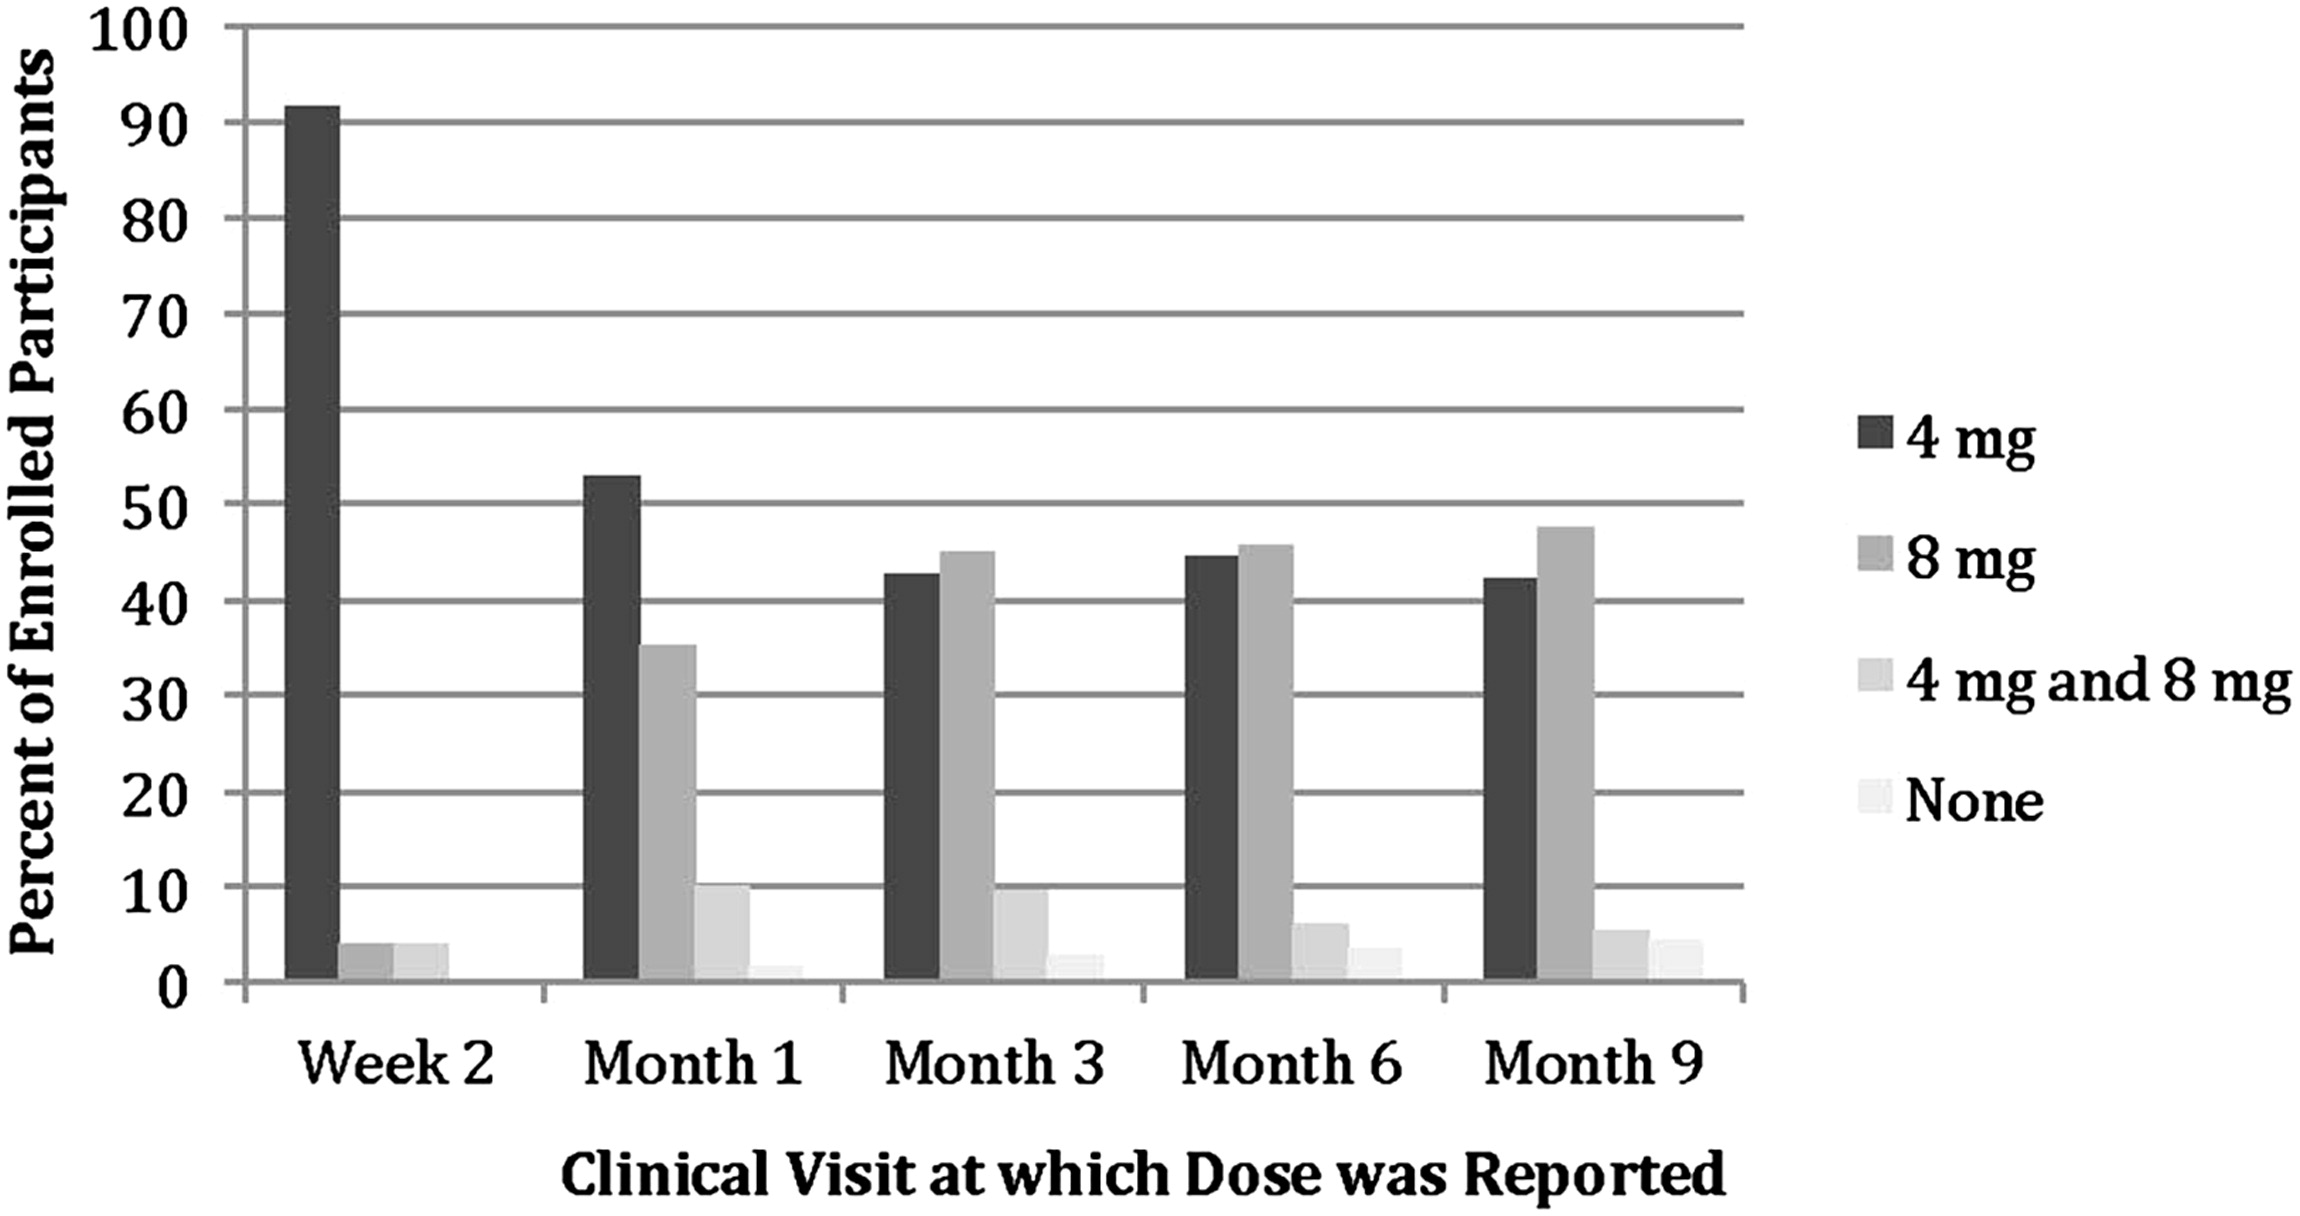 Long Term Efficacy And Safety Of Questionnaire Based Initiation Of Urgency Urinary Incontinence